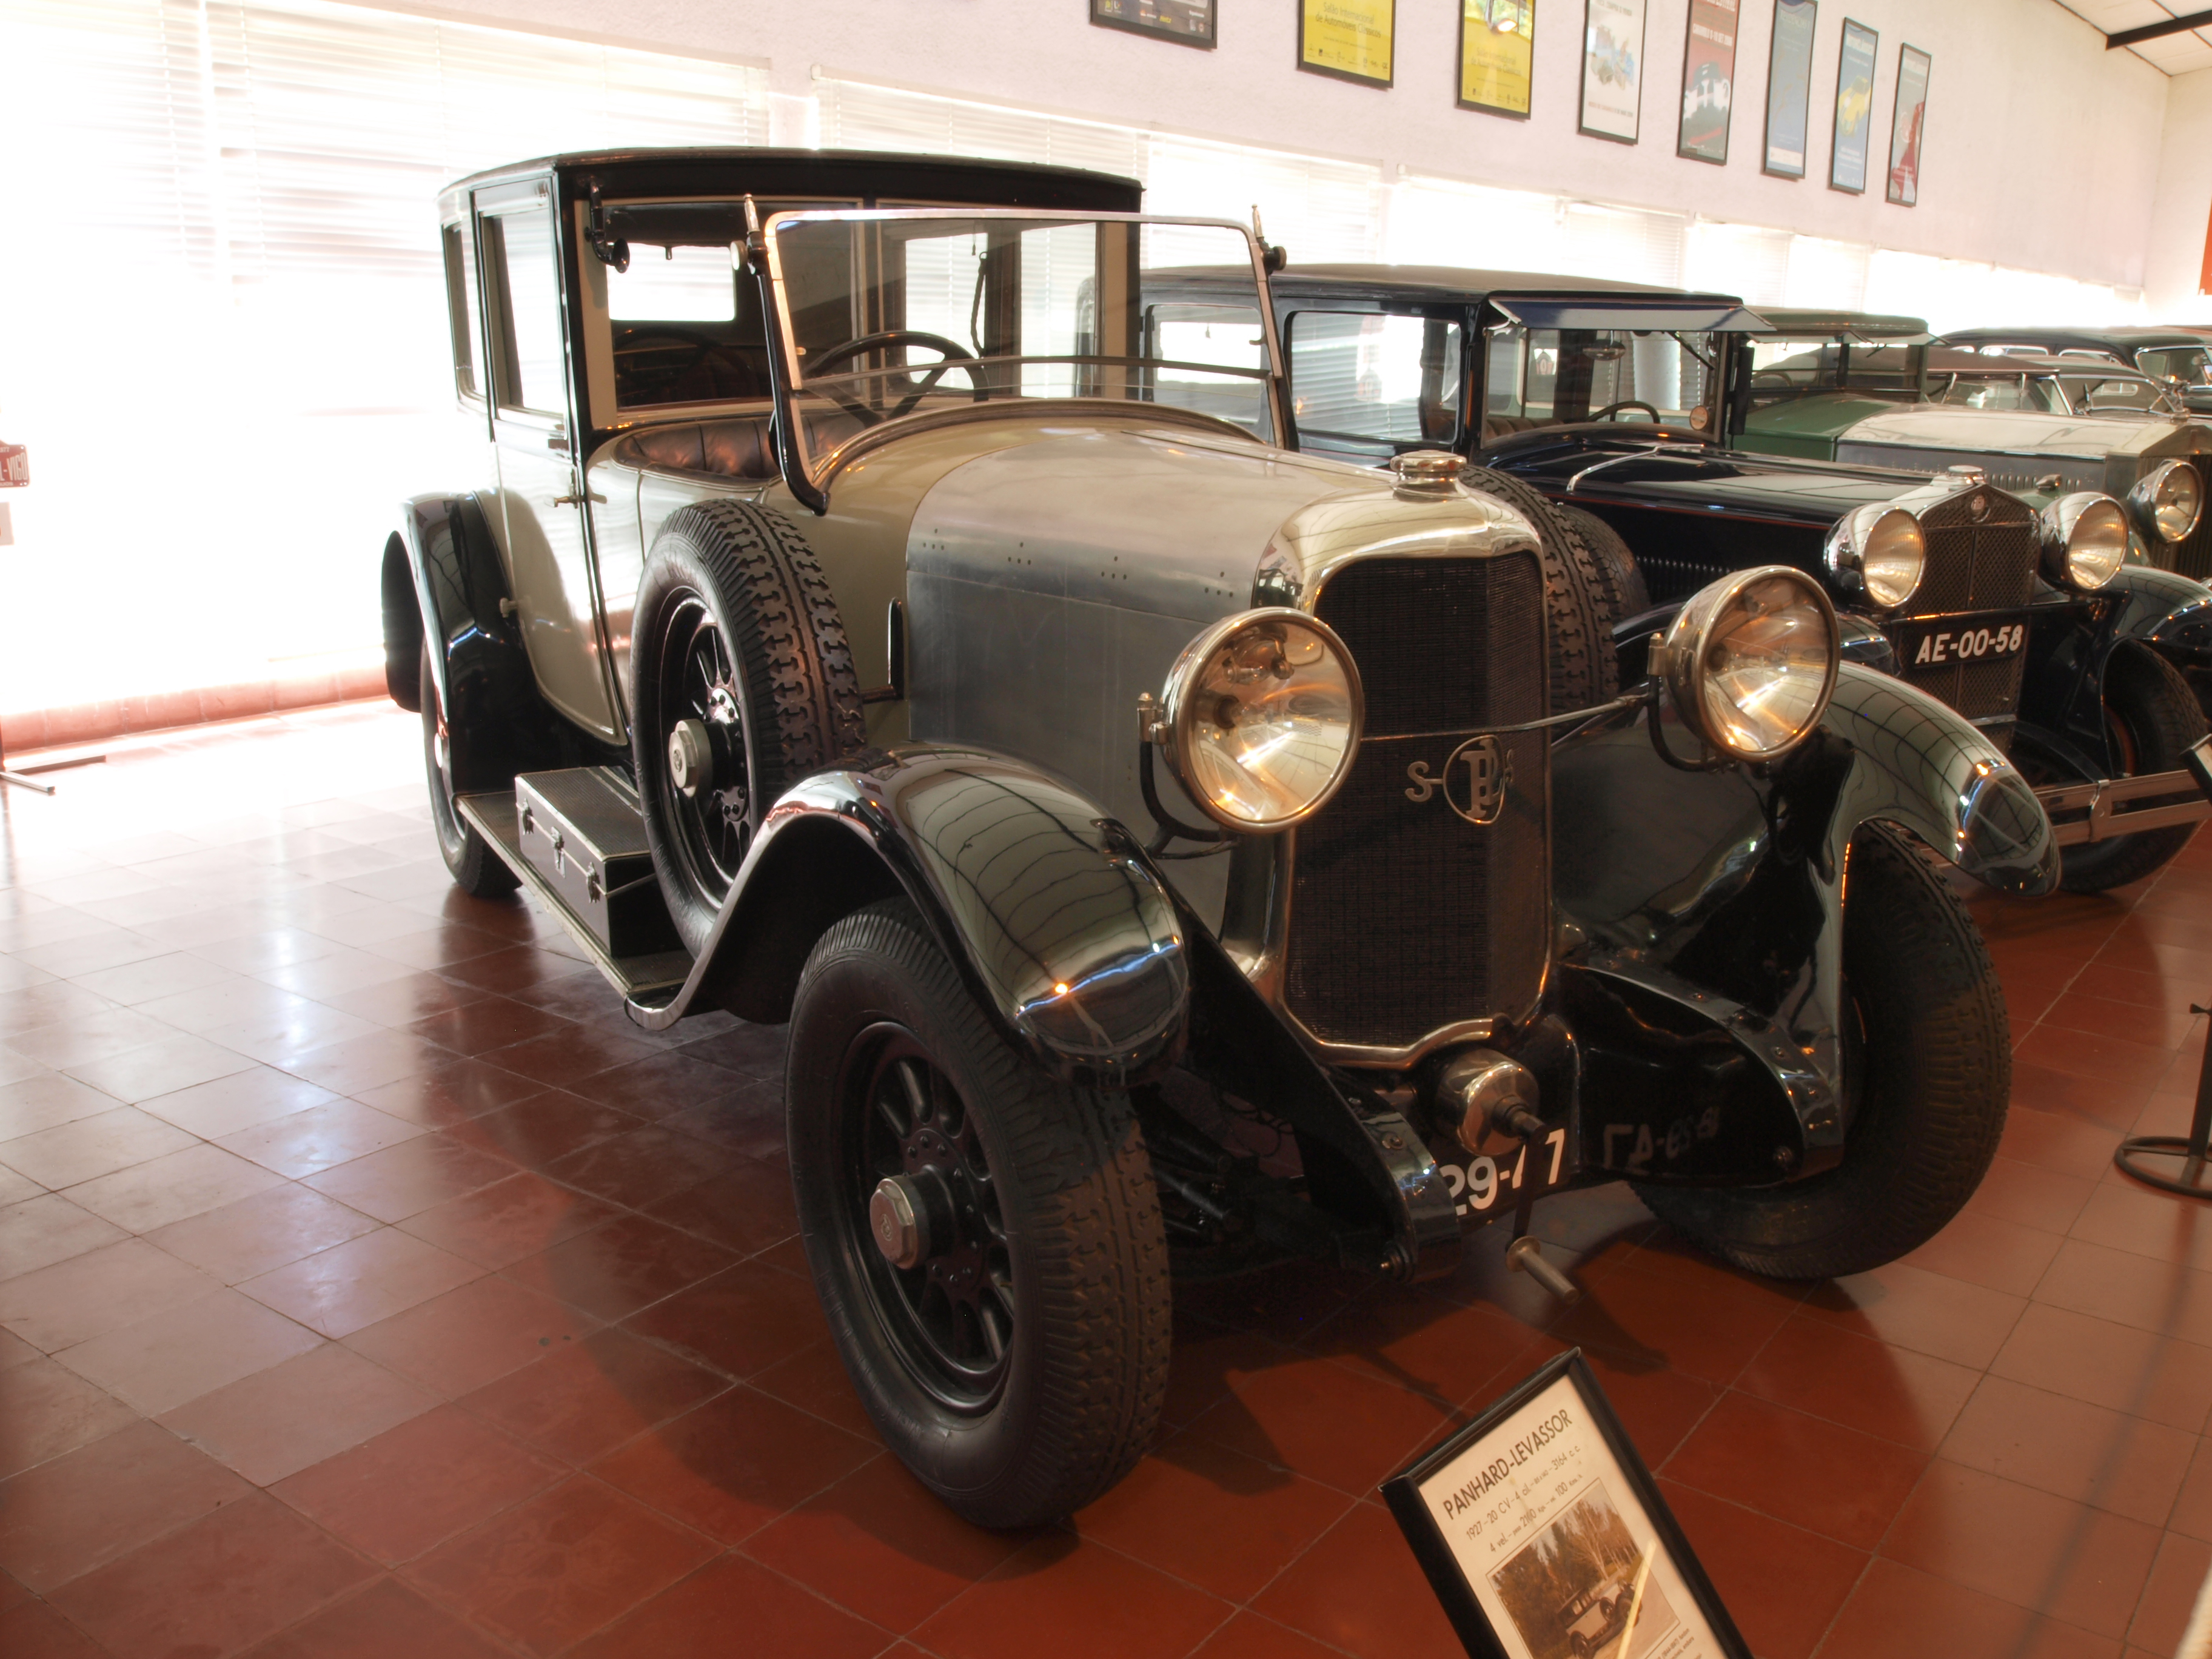 file 1927 panhard-levassor  20hp  3164cc  100kmh photo-1 jpg